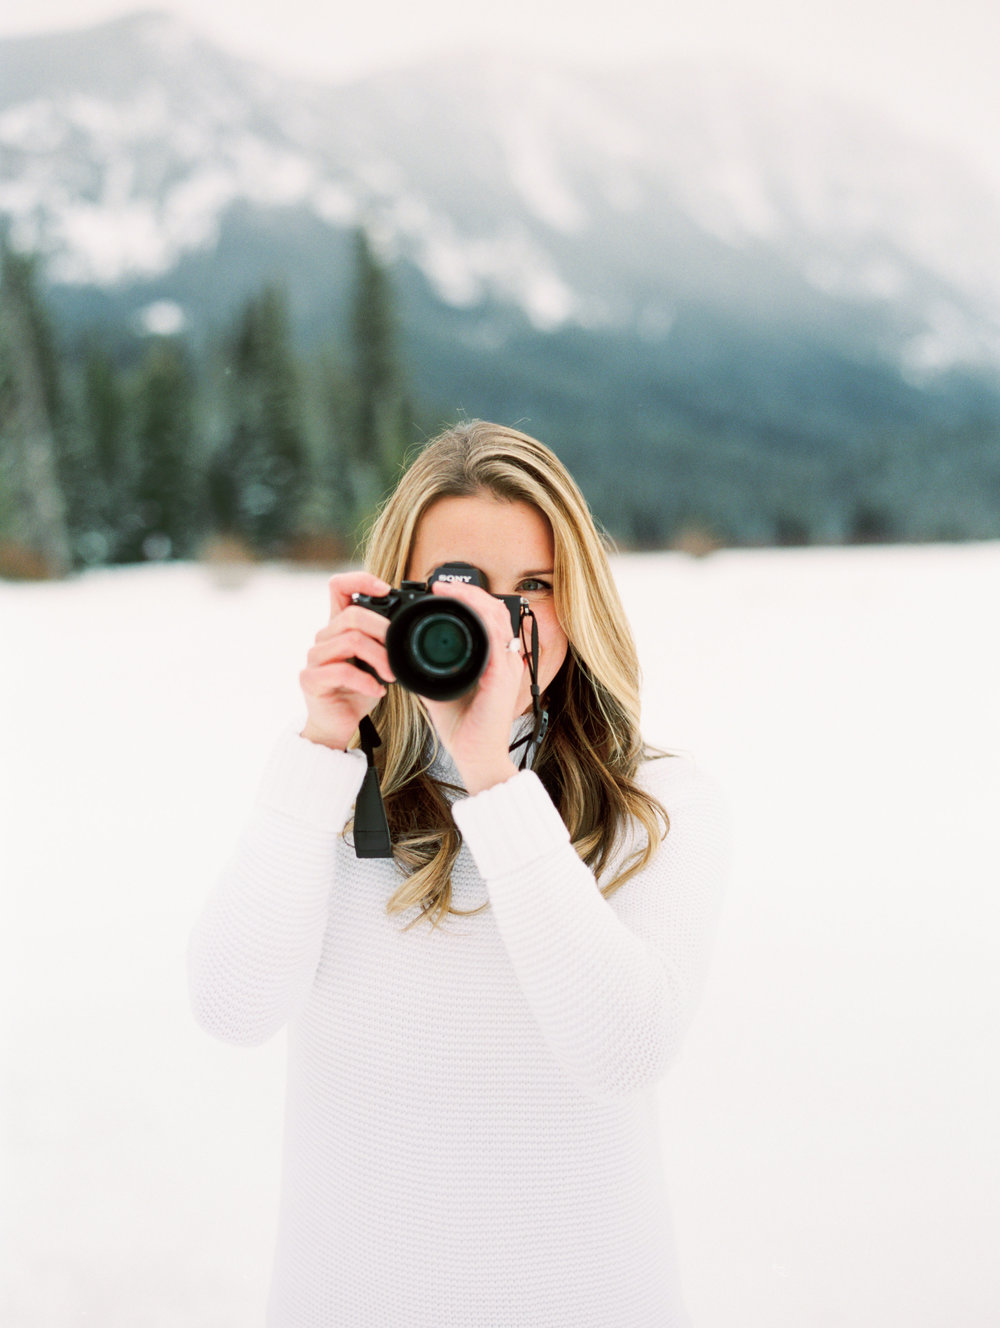 Natalie Yates - Photographer, Co-Founder of Collective Thirty One, Retired Finance NerdInstagram: @natalieyatesphotography